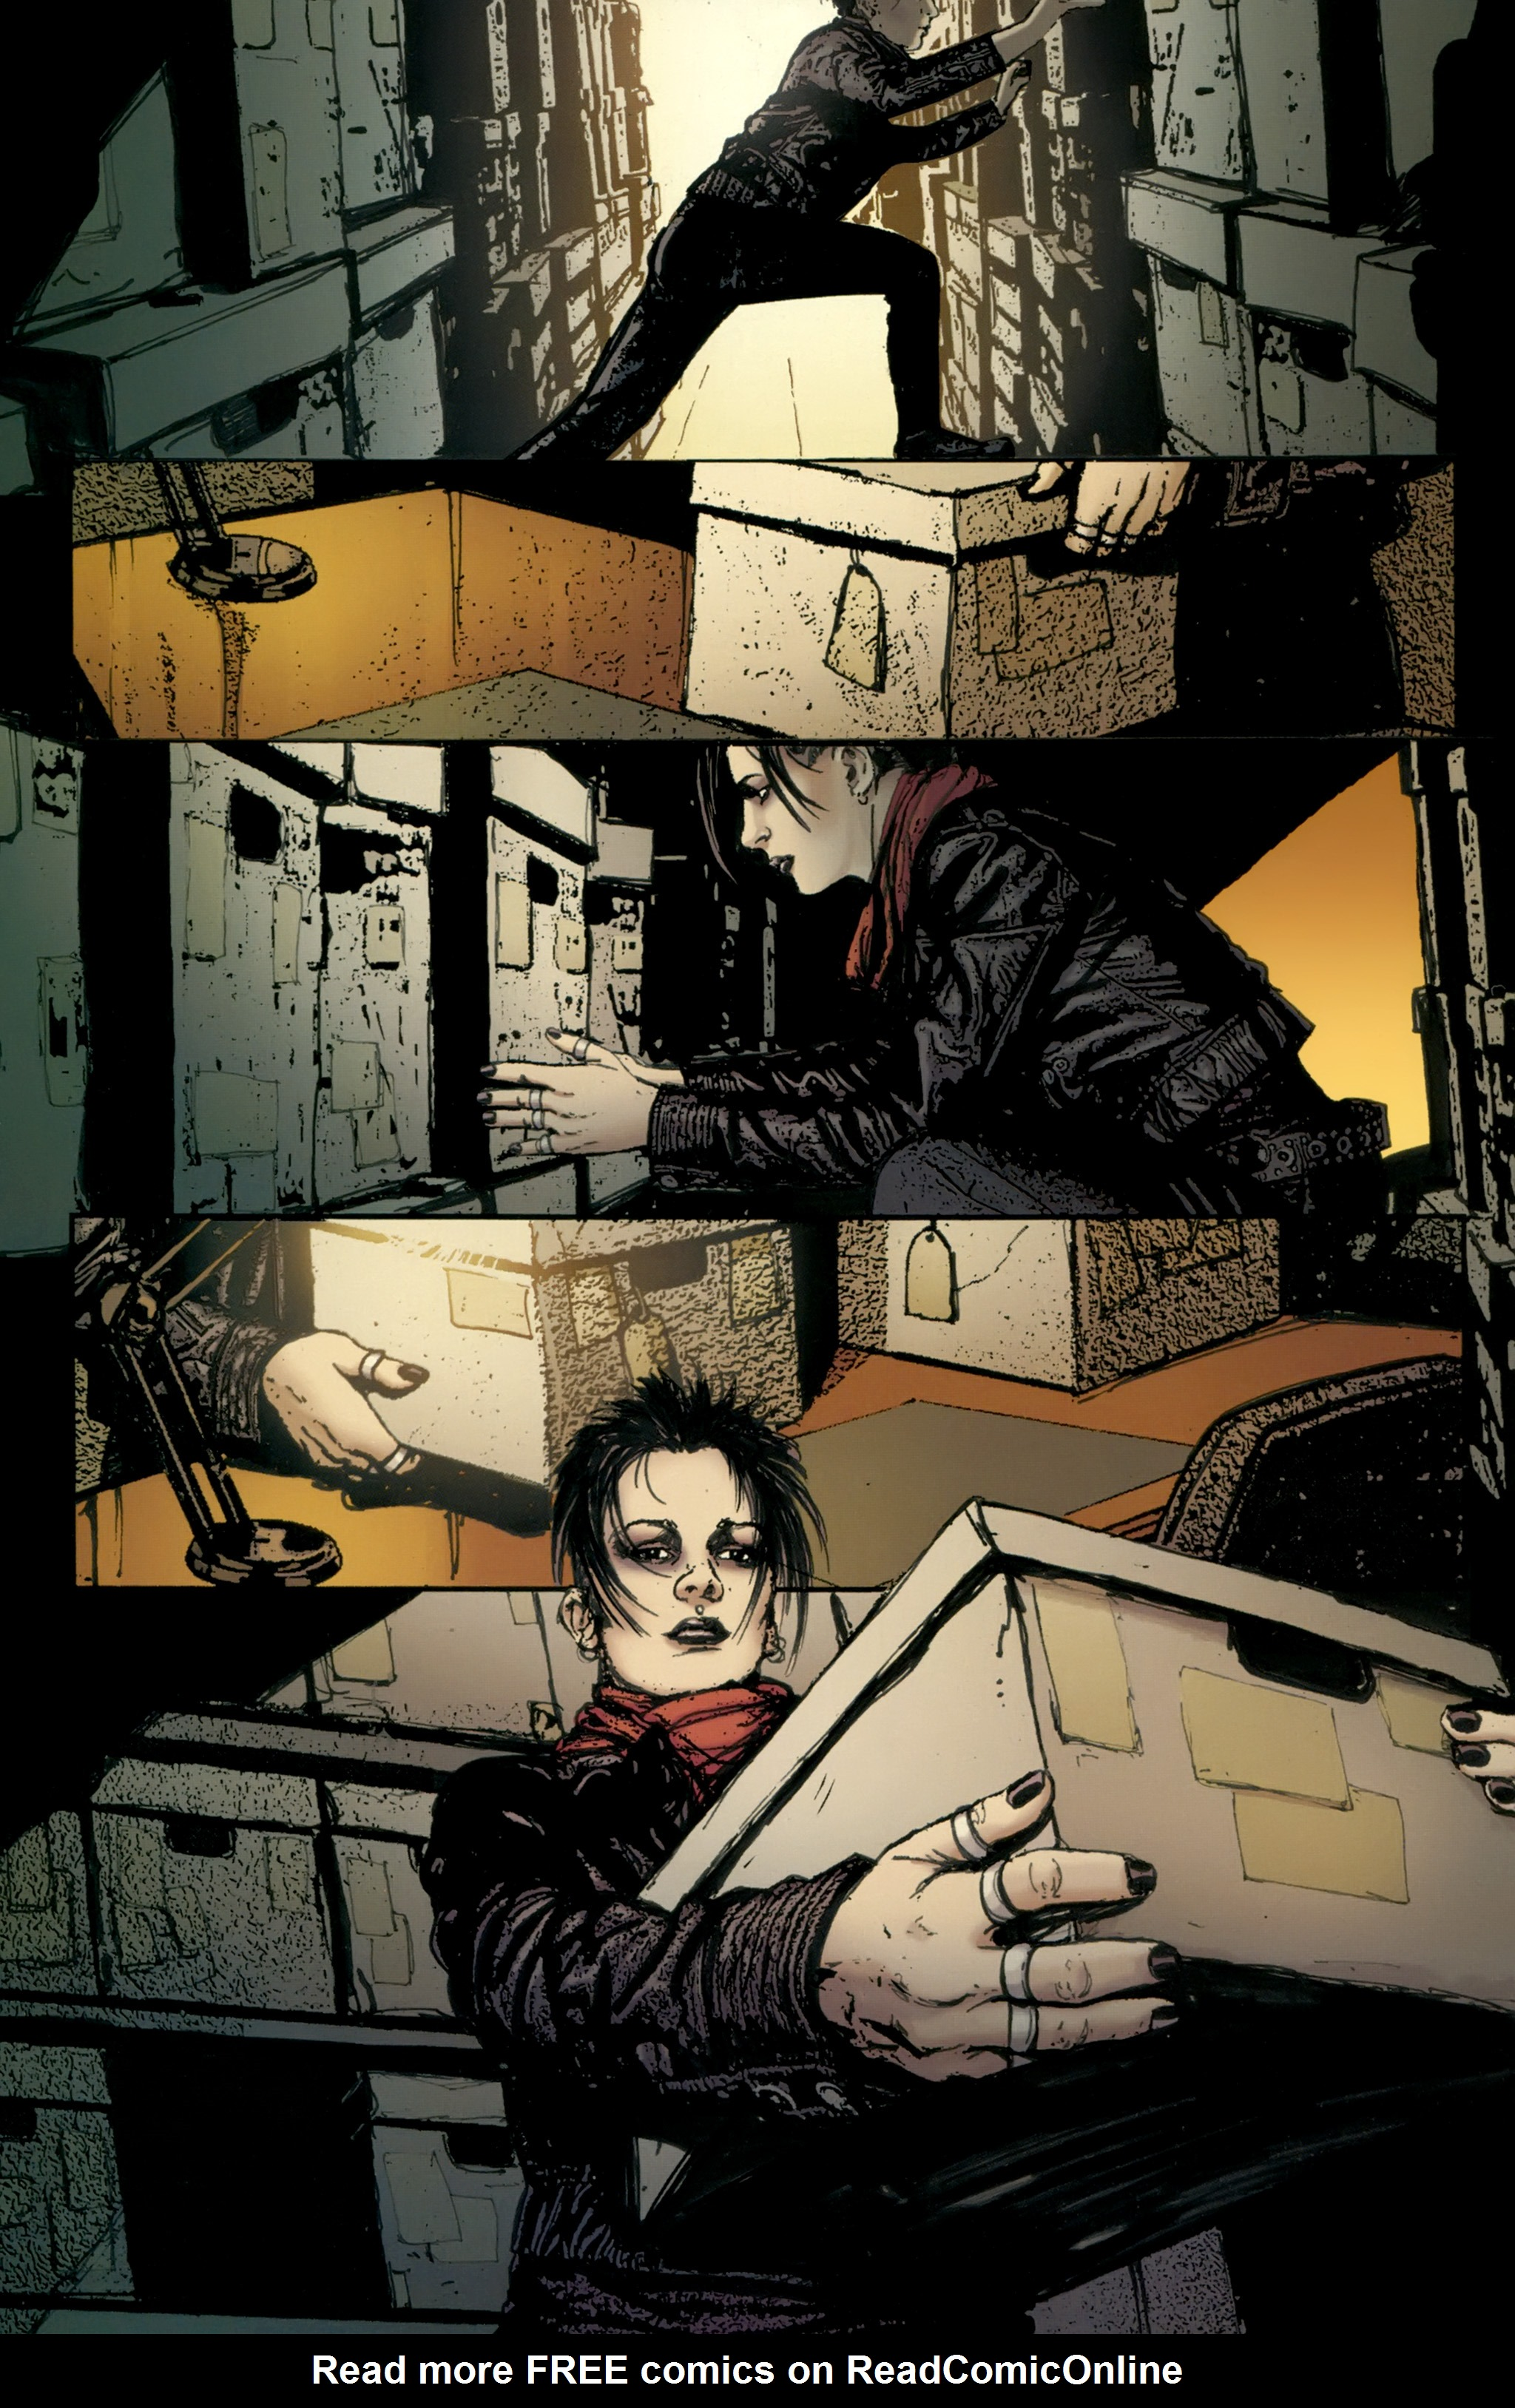 Read online The Girl With the Dragon Tattoo comic -  Issue # TPB 2 - 78